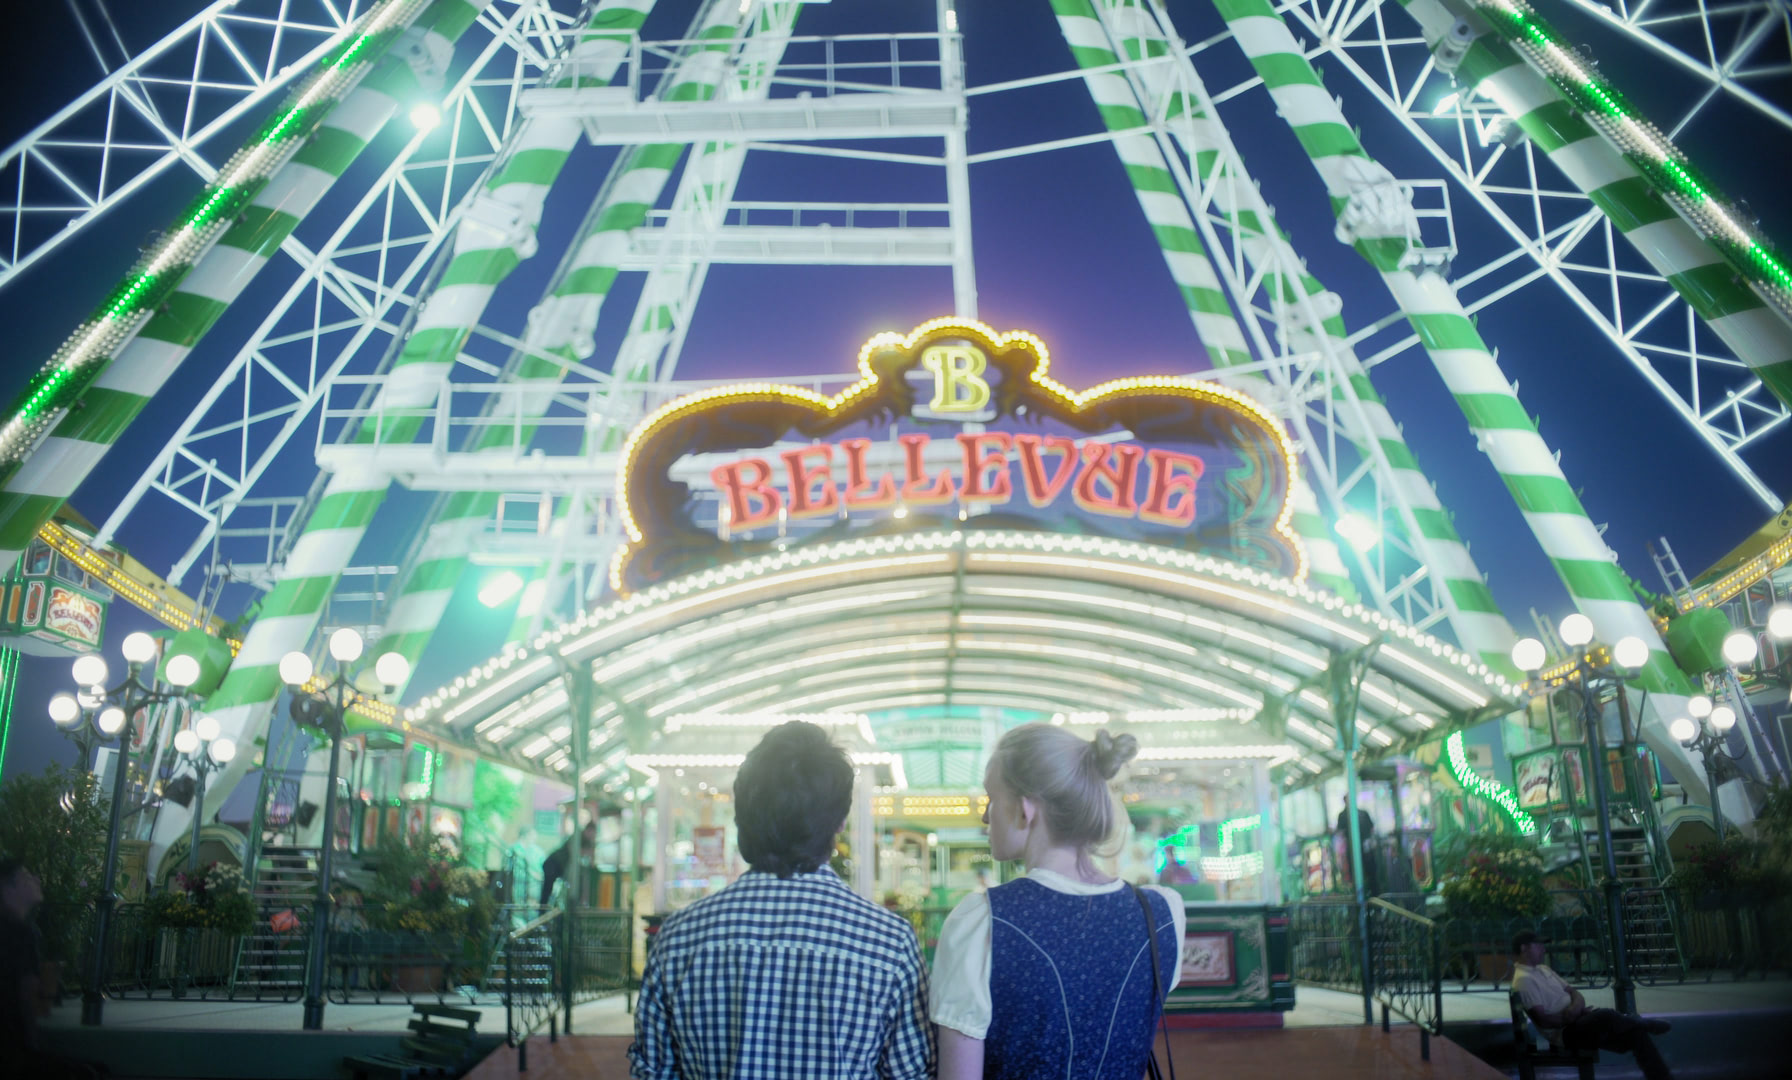 A young man and a woman are standing in front a Ferris wheel, looking at each other.